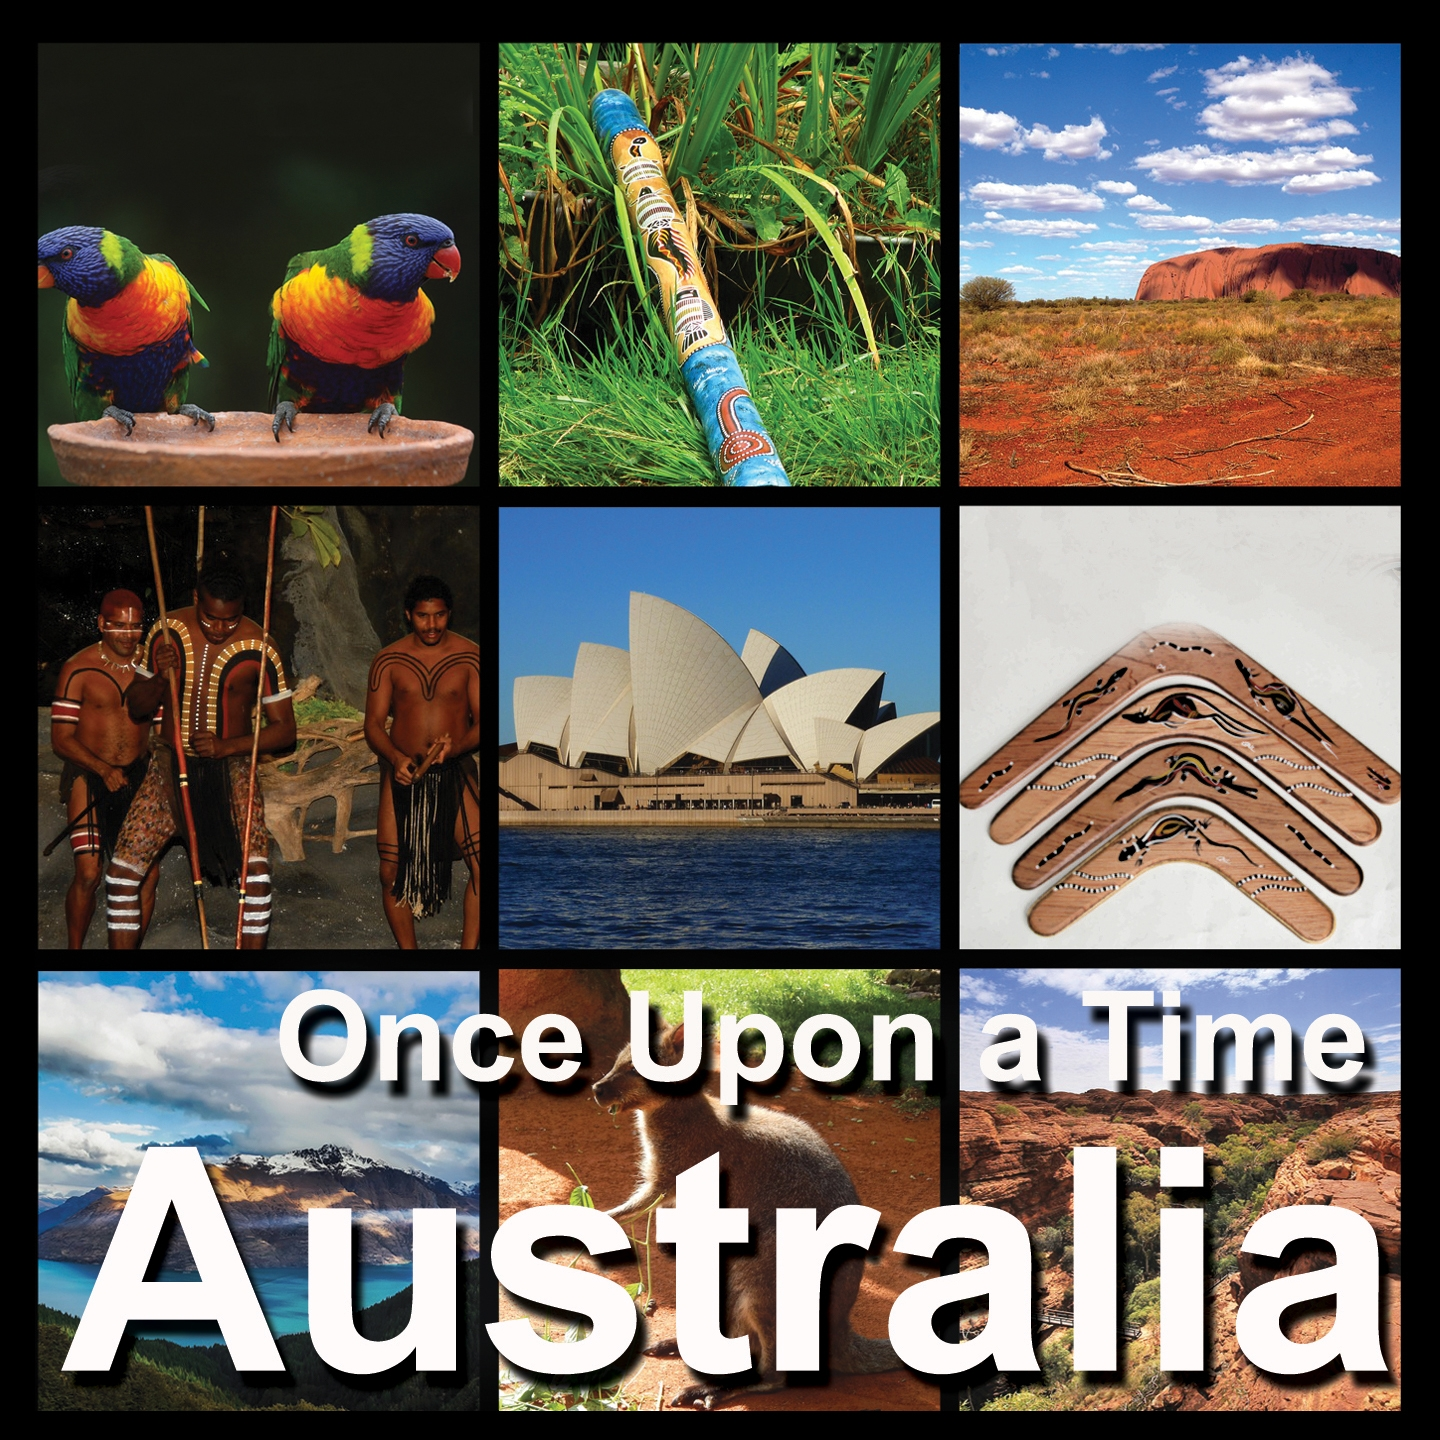 Australia | Once Upon a Time